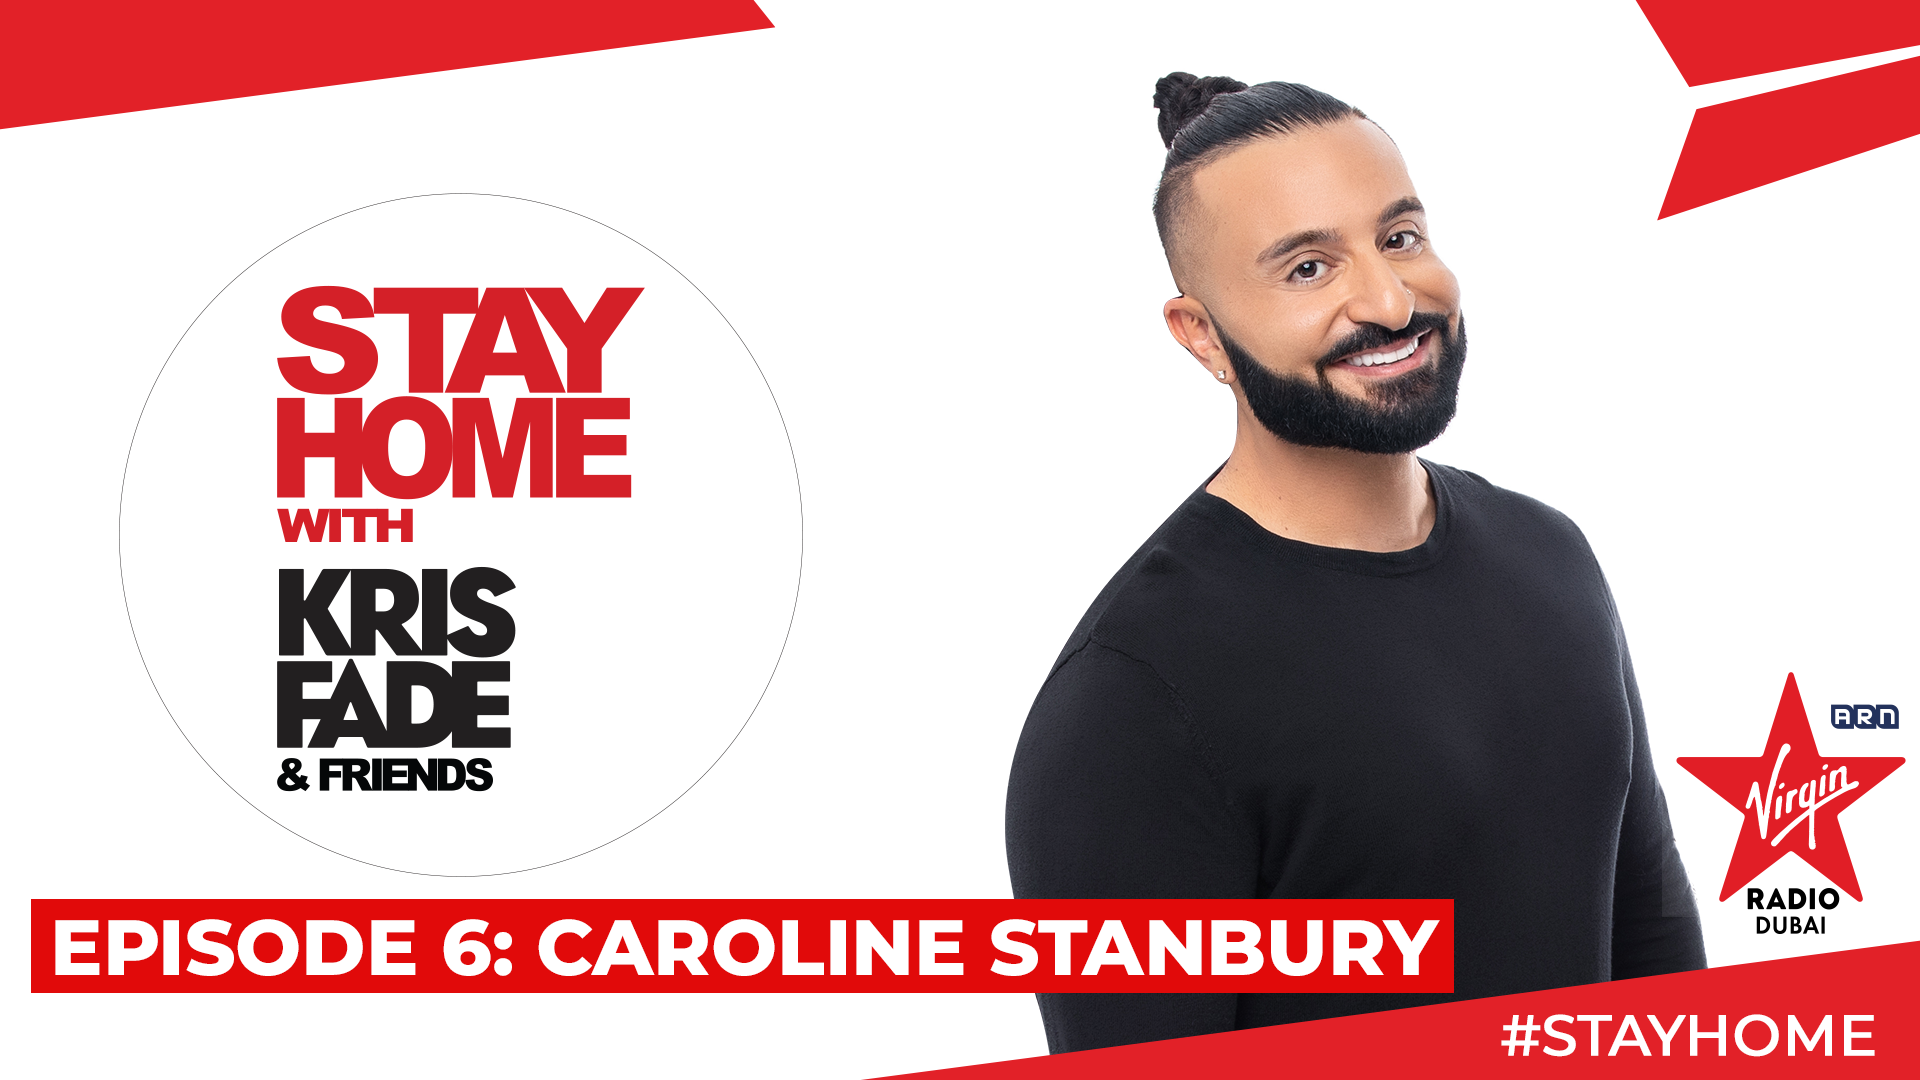 Stay Home with Kris Fade & Friends - Caroline Stanbury